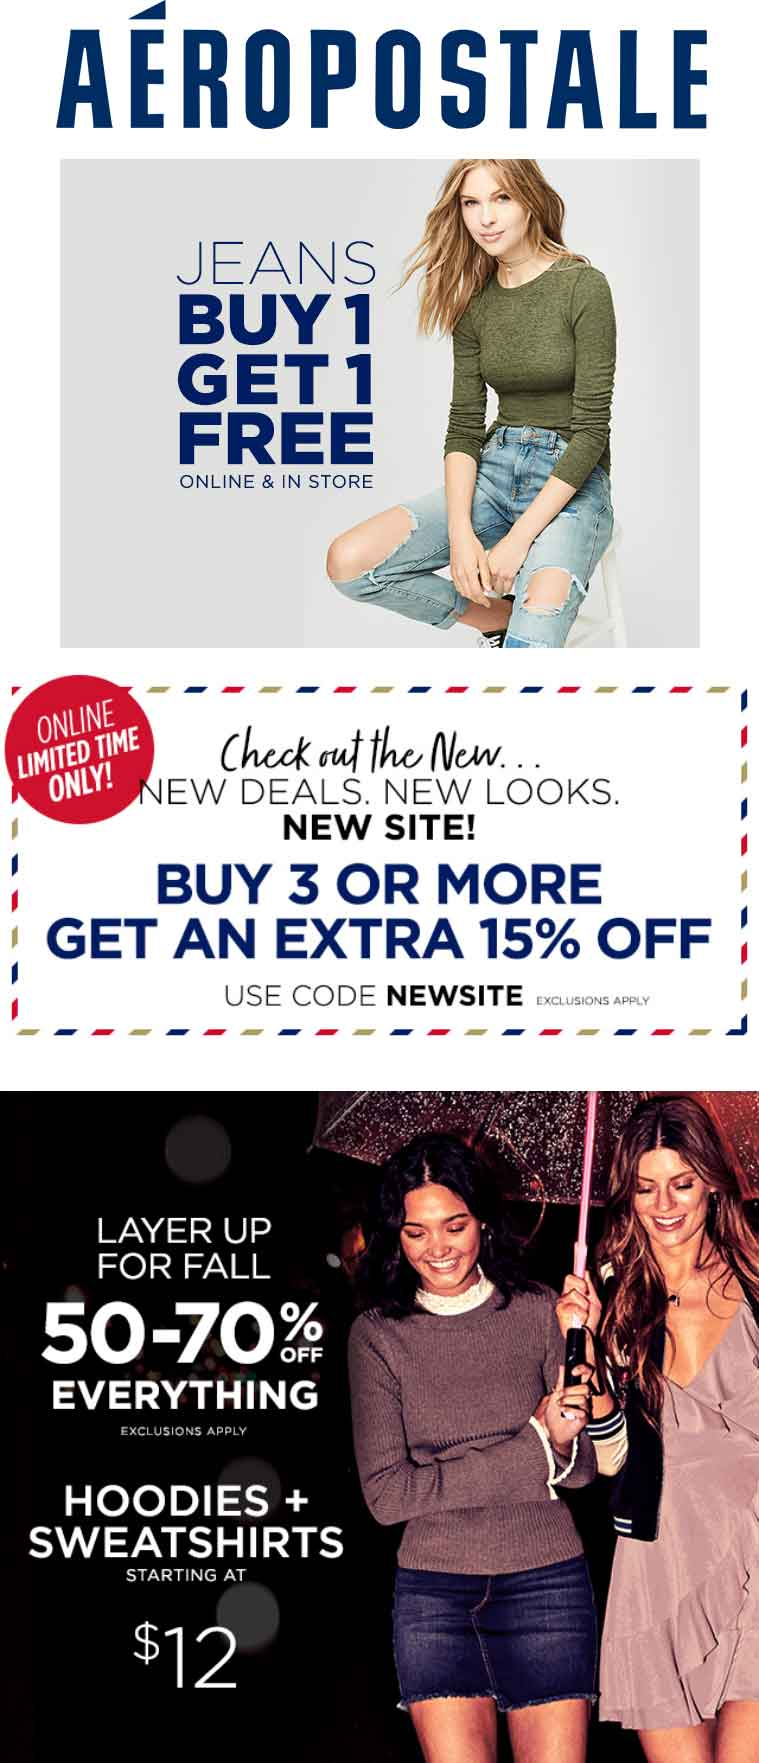 Aeropostale Coupon March 2018 Second jeans free at Aeropostale, ditto online + 15% off 3 items via promo code NEWSITE